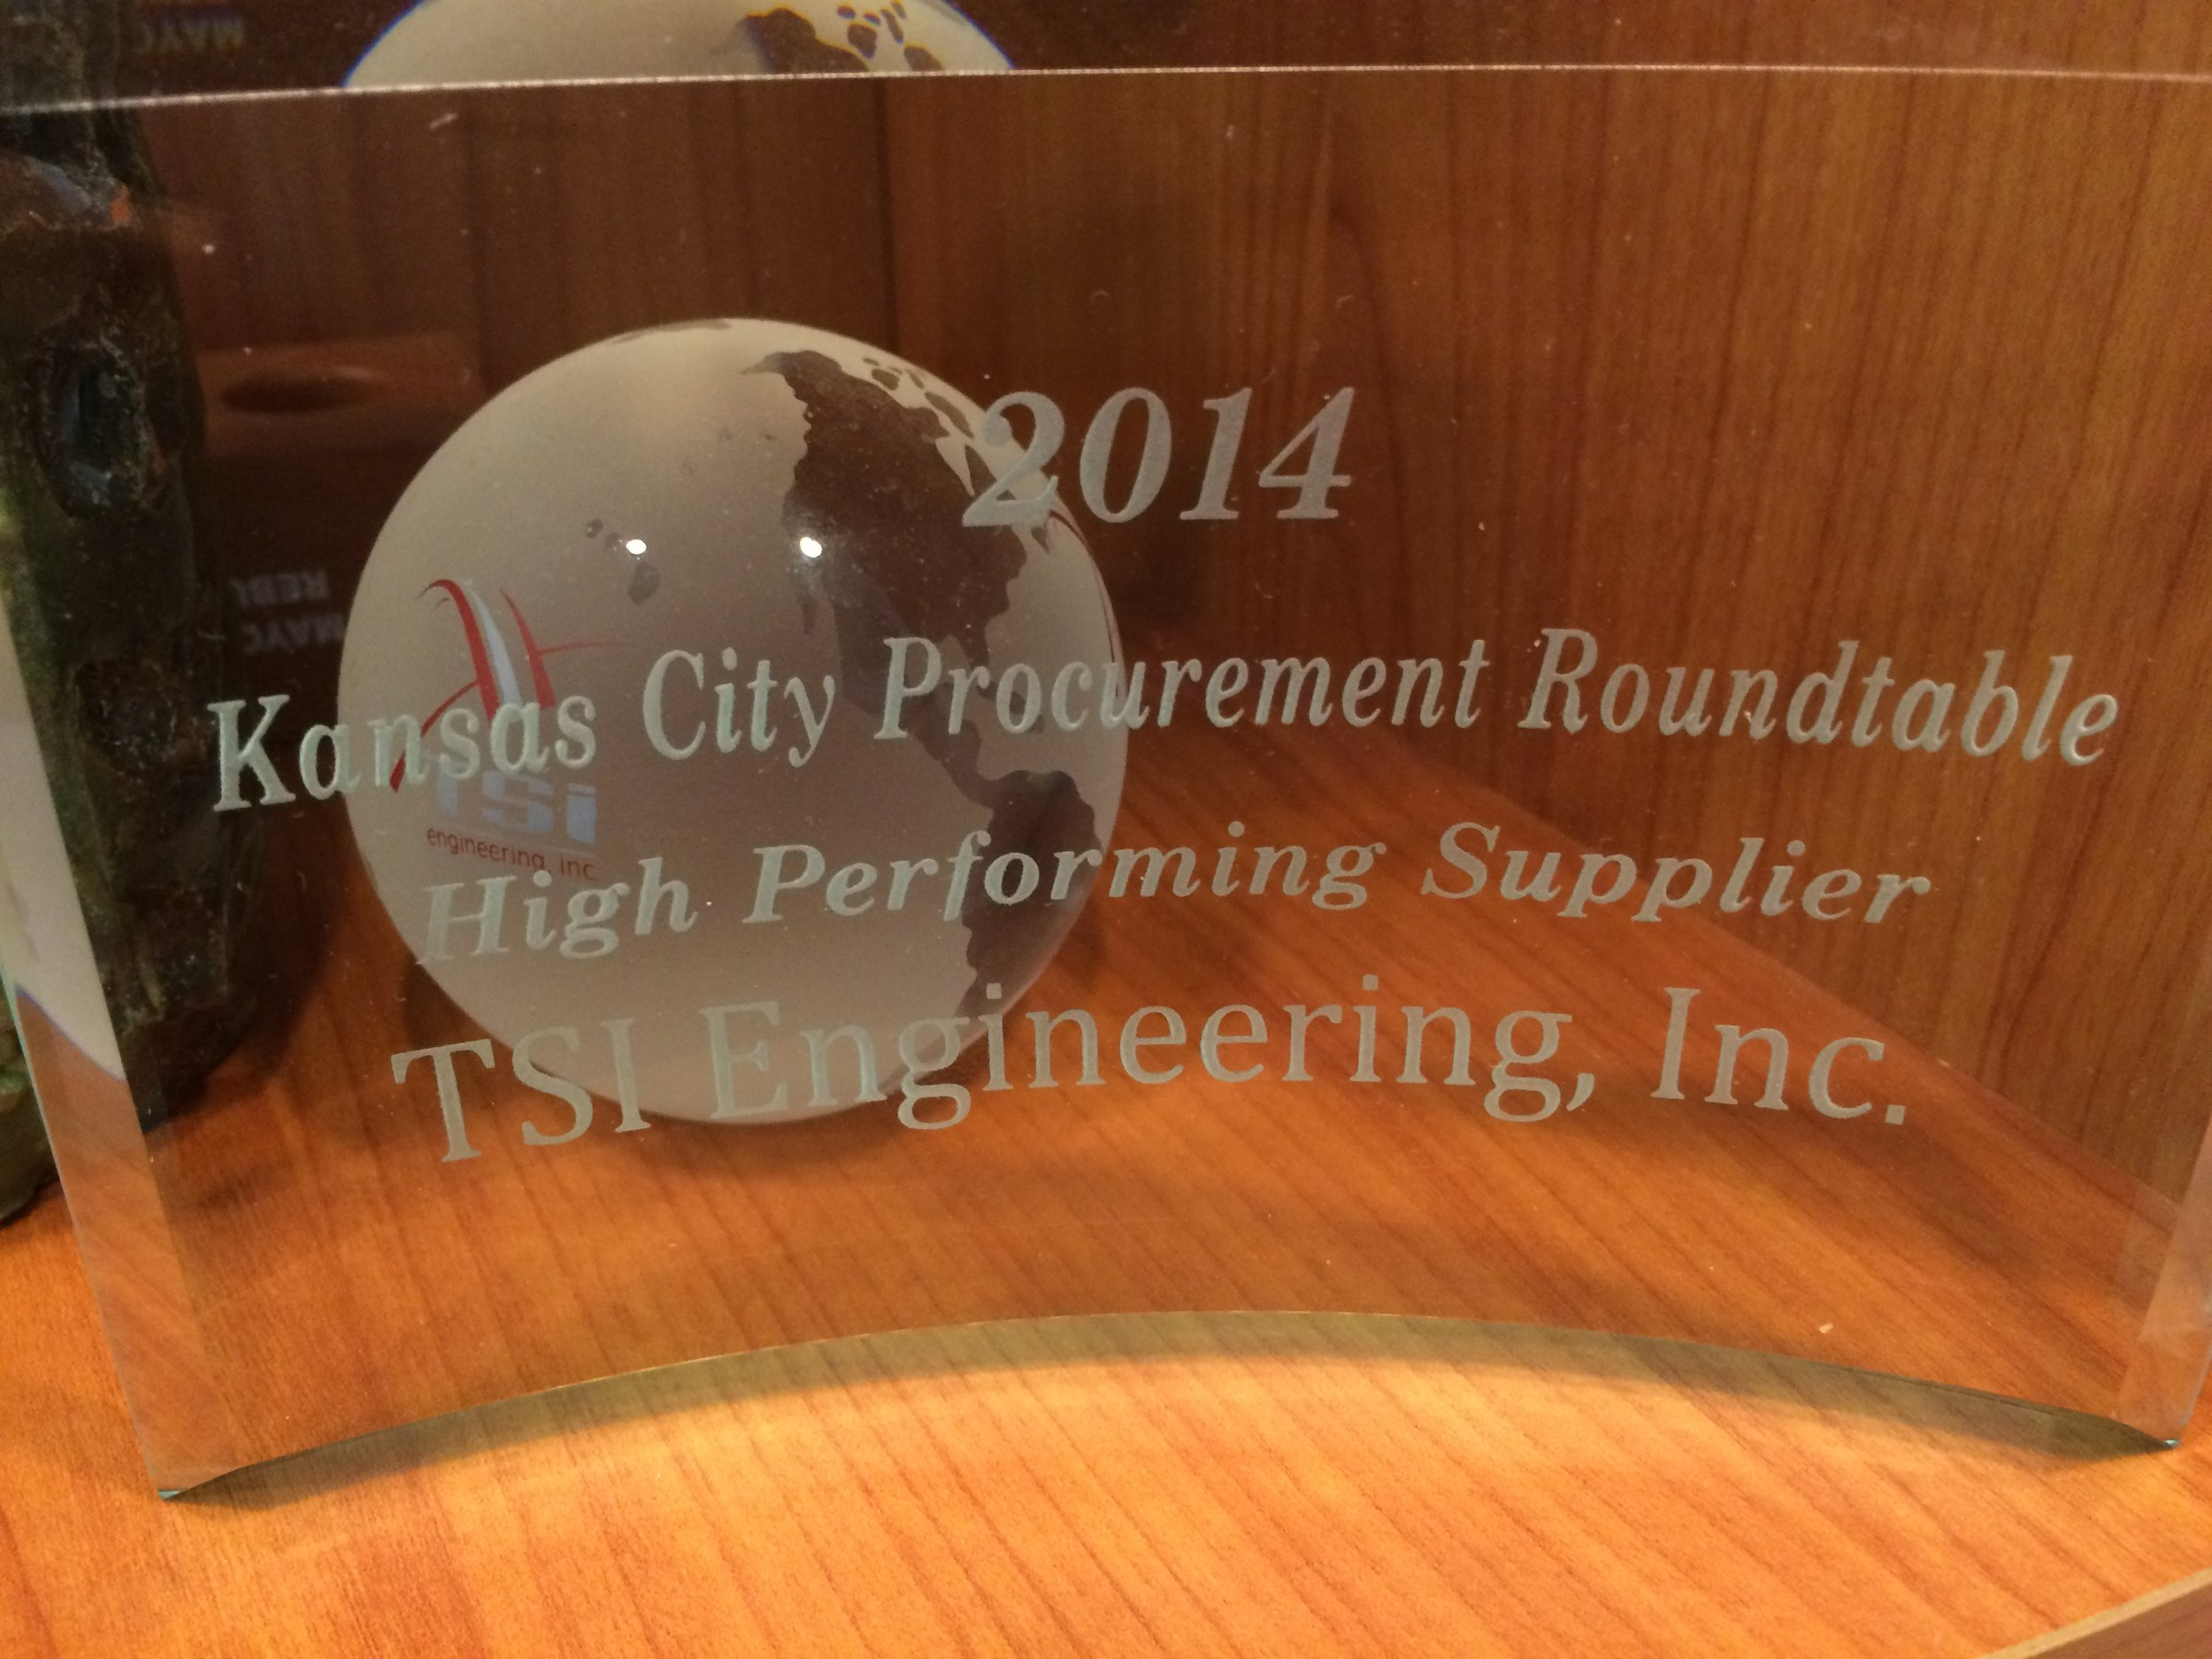 High Performing Supplier Award